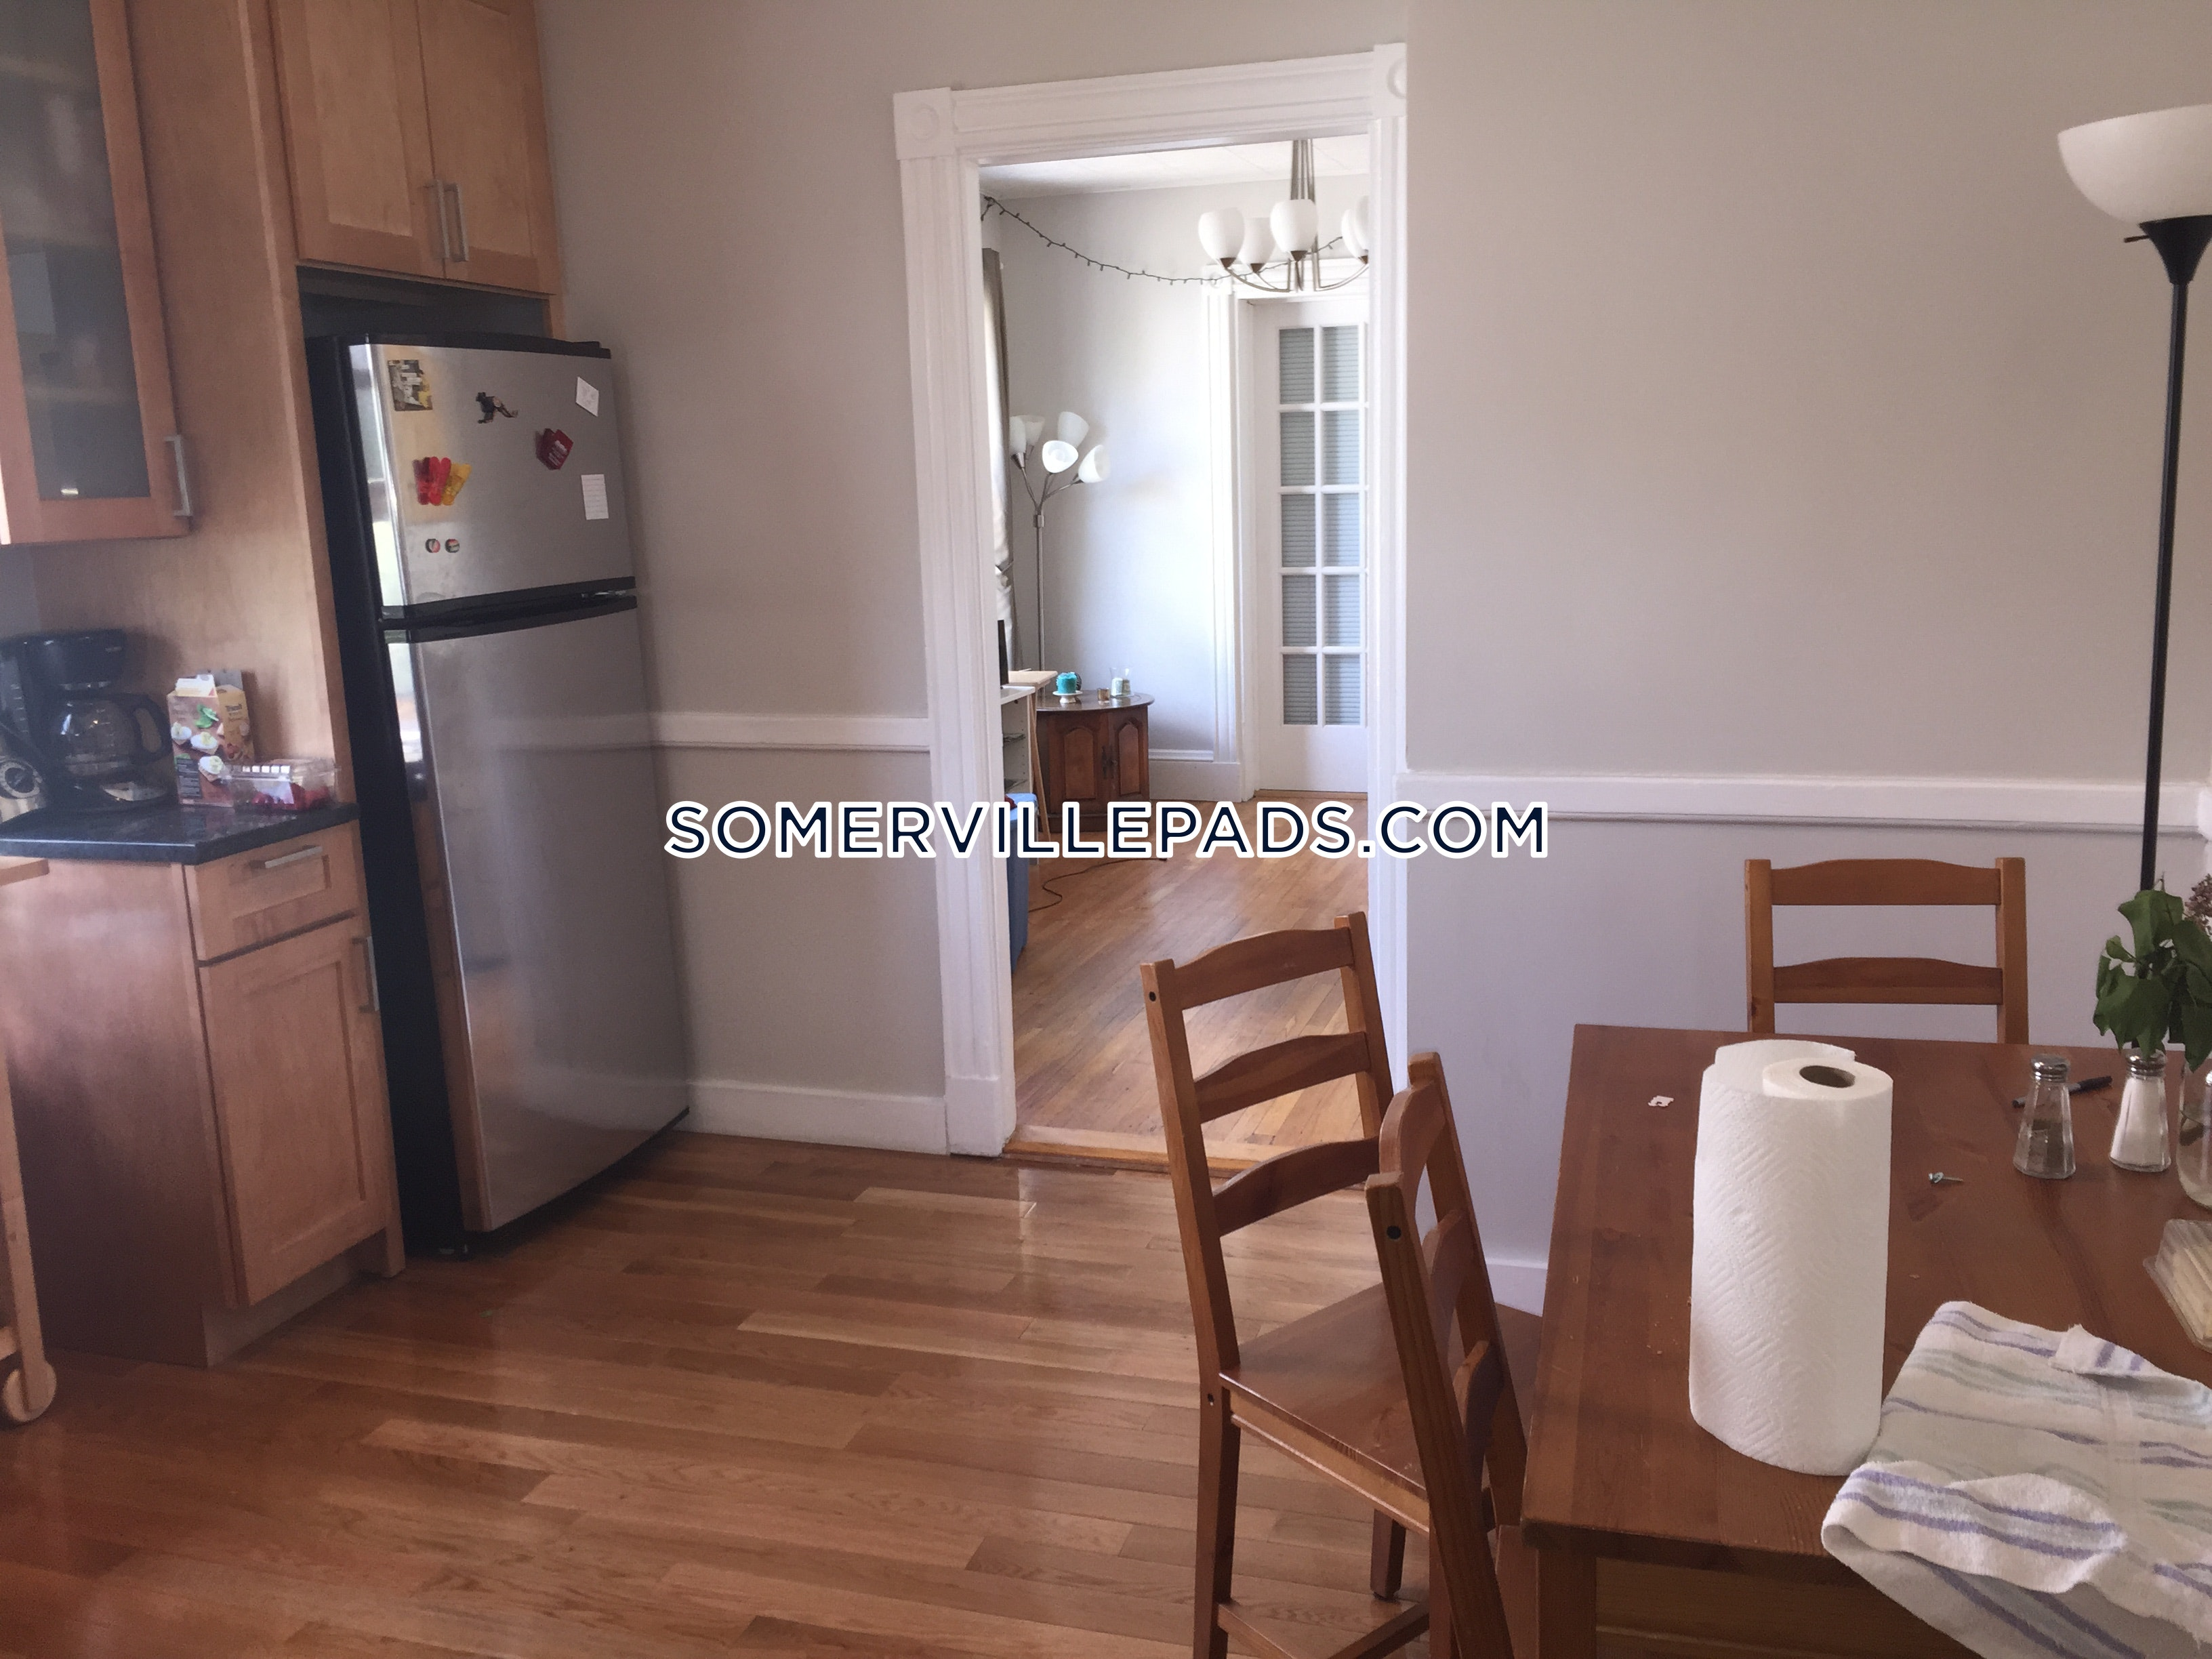 3-beds-1-bath-somerville-spring-hill-3200-433670